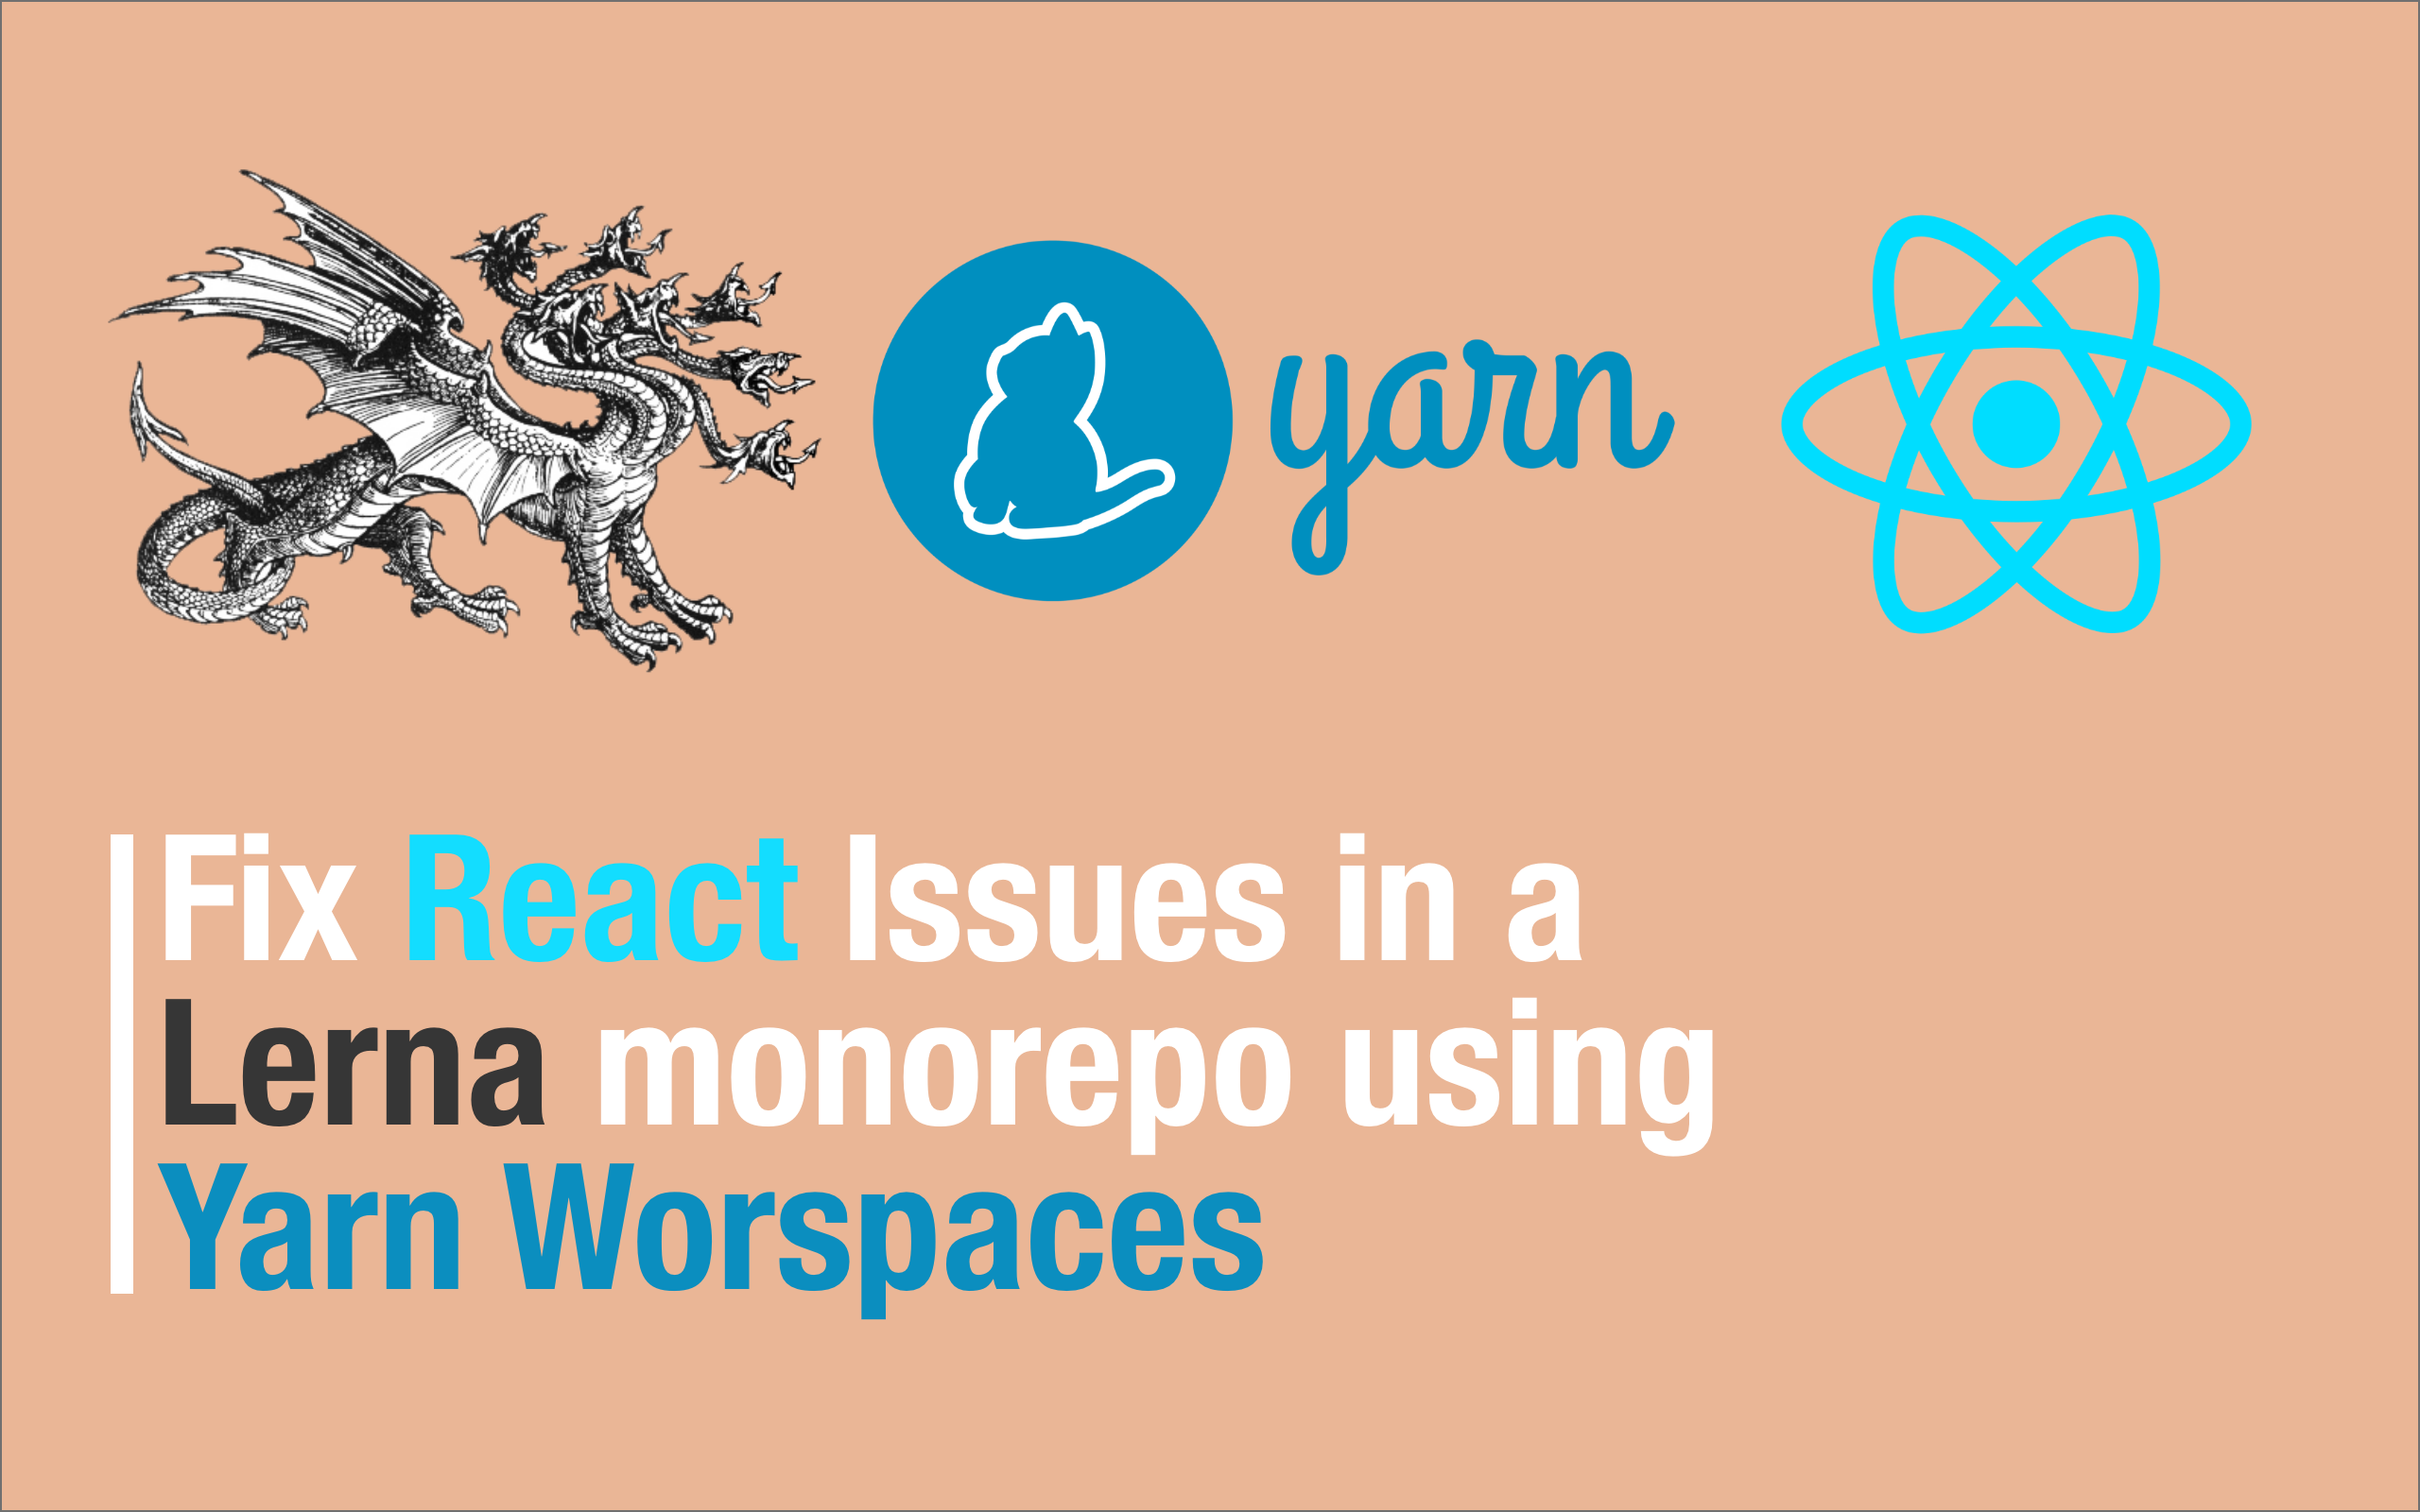 Fix React Issues in Lerna using Yarn Workspaces